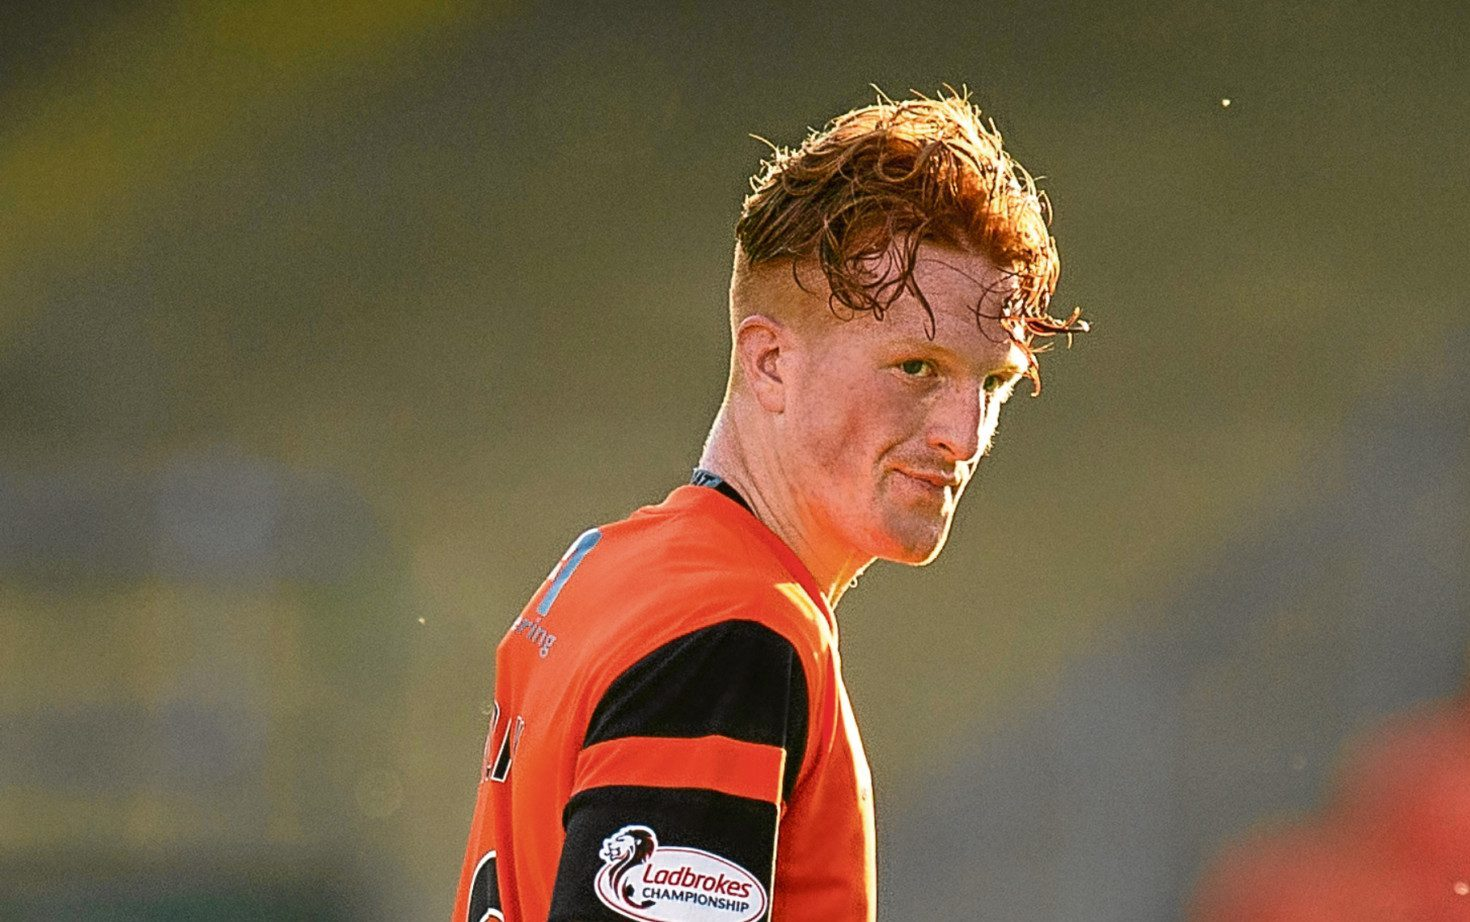 Dundee United's Simon Murray